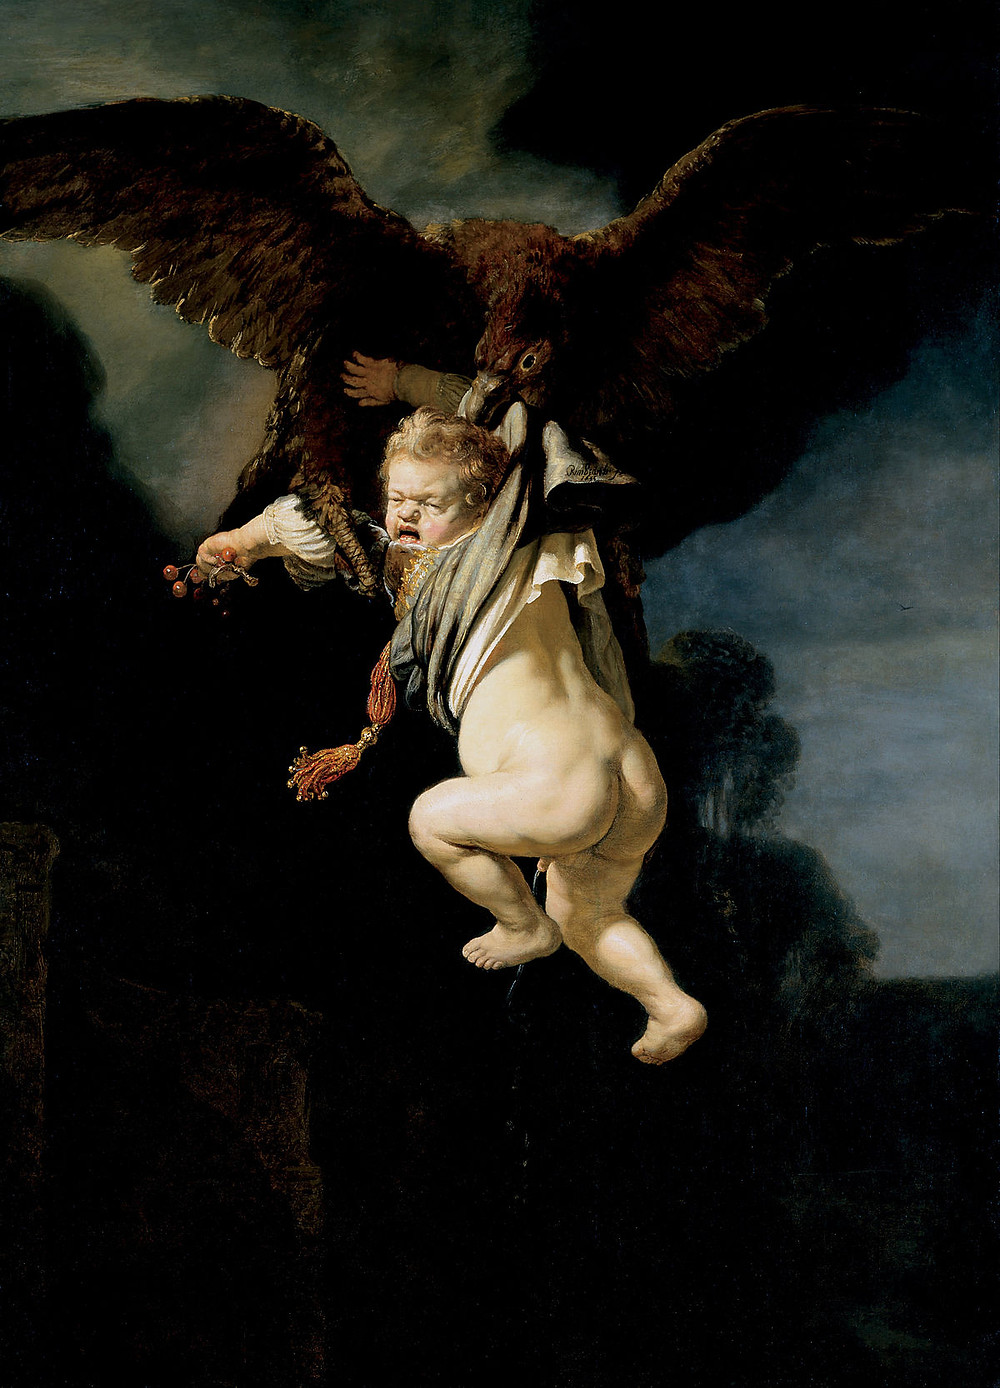 The Abduction of Ganymede - Rembrandt 1635